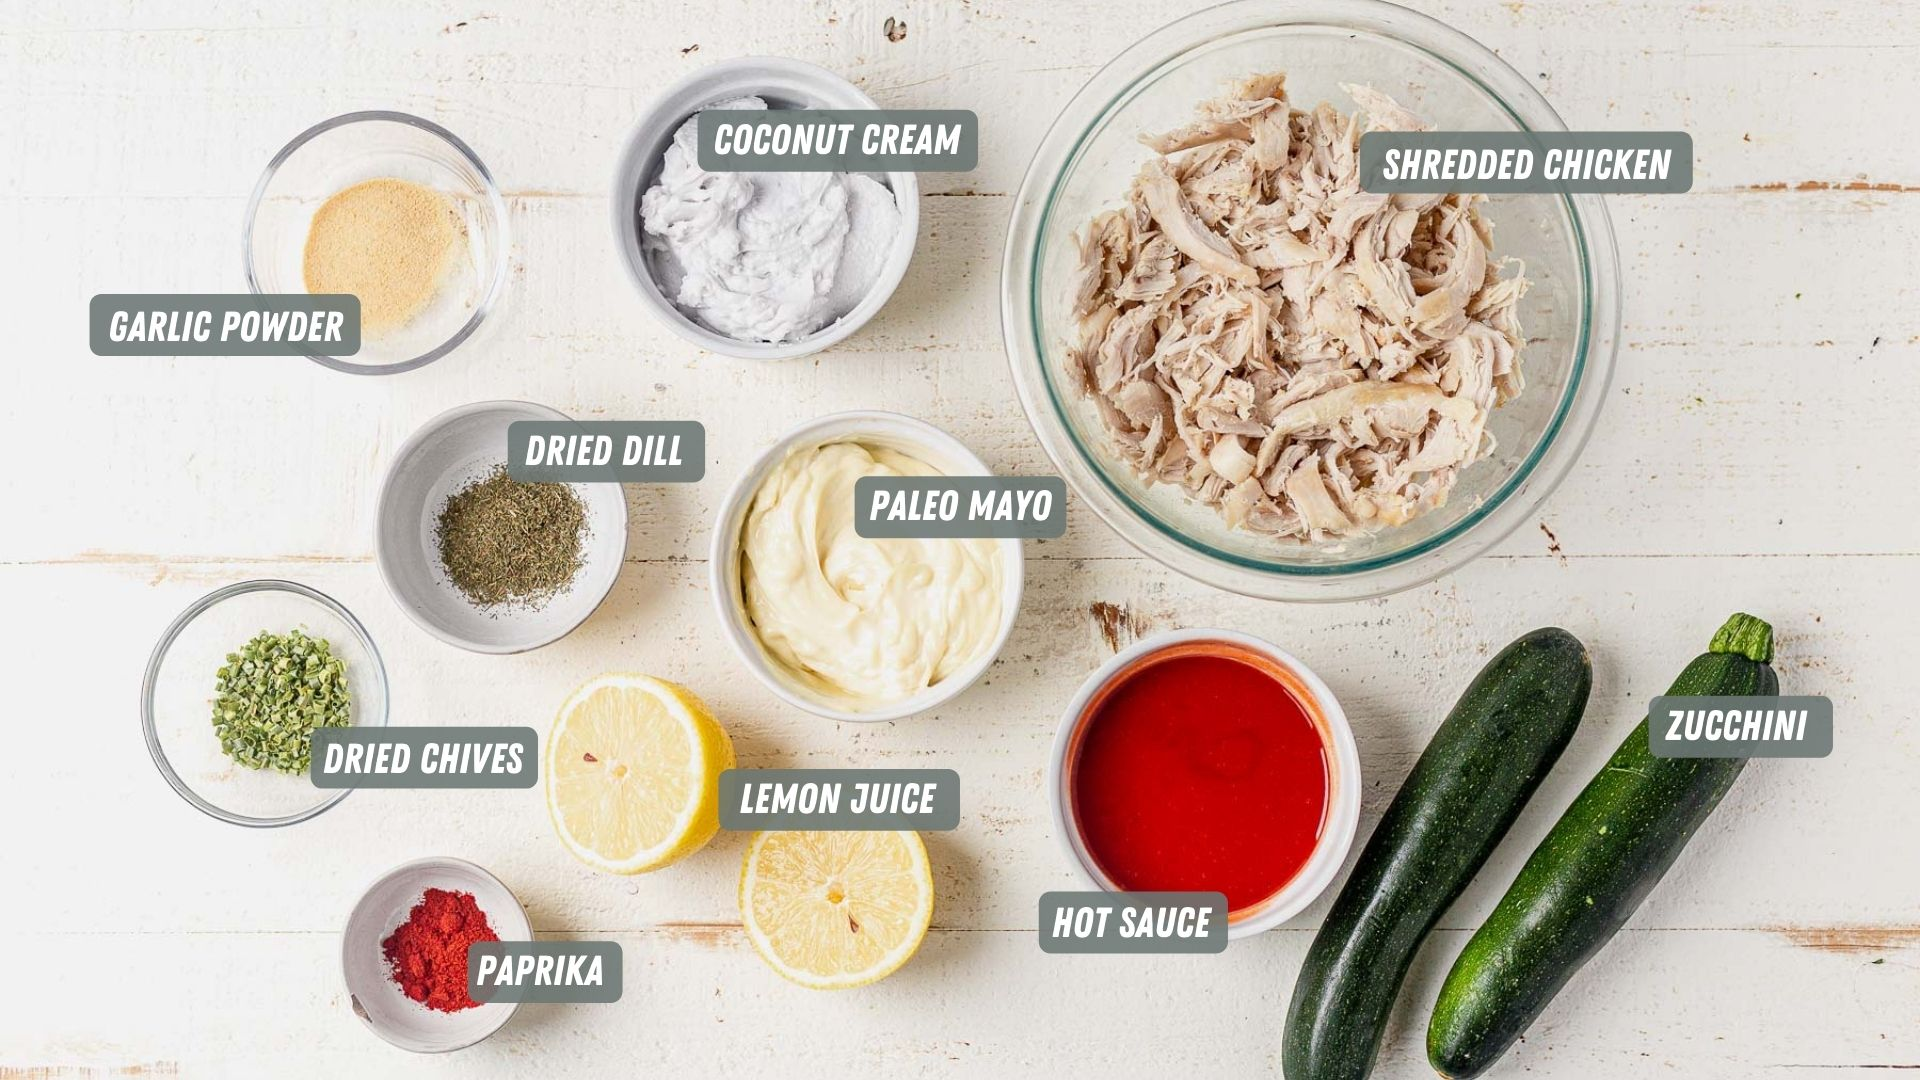 ingredients for buffalo chicken zucchini boats on a white table